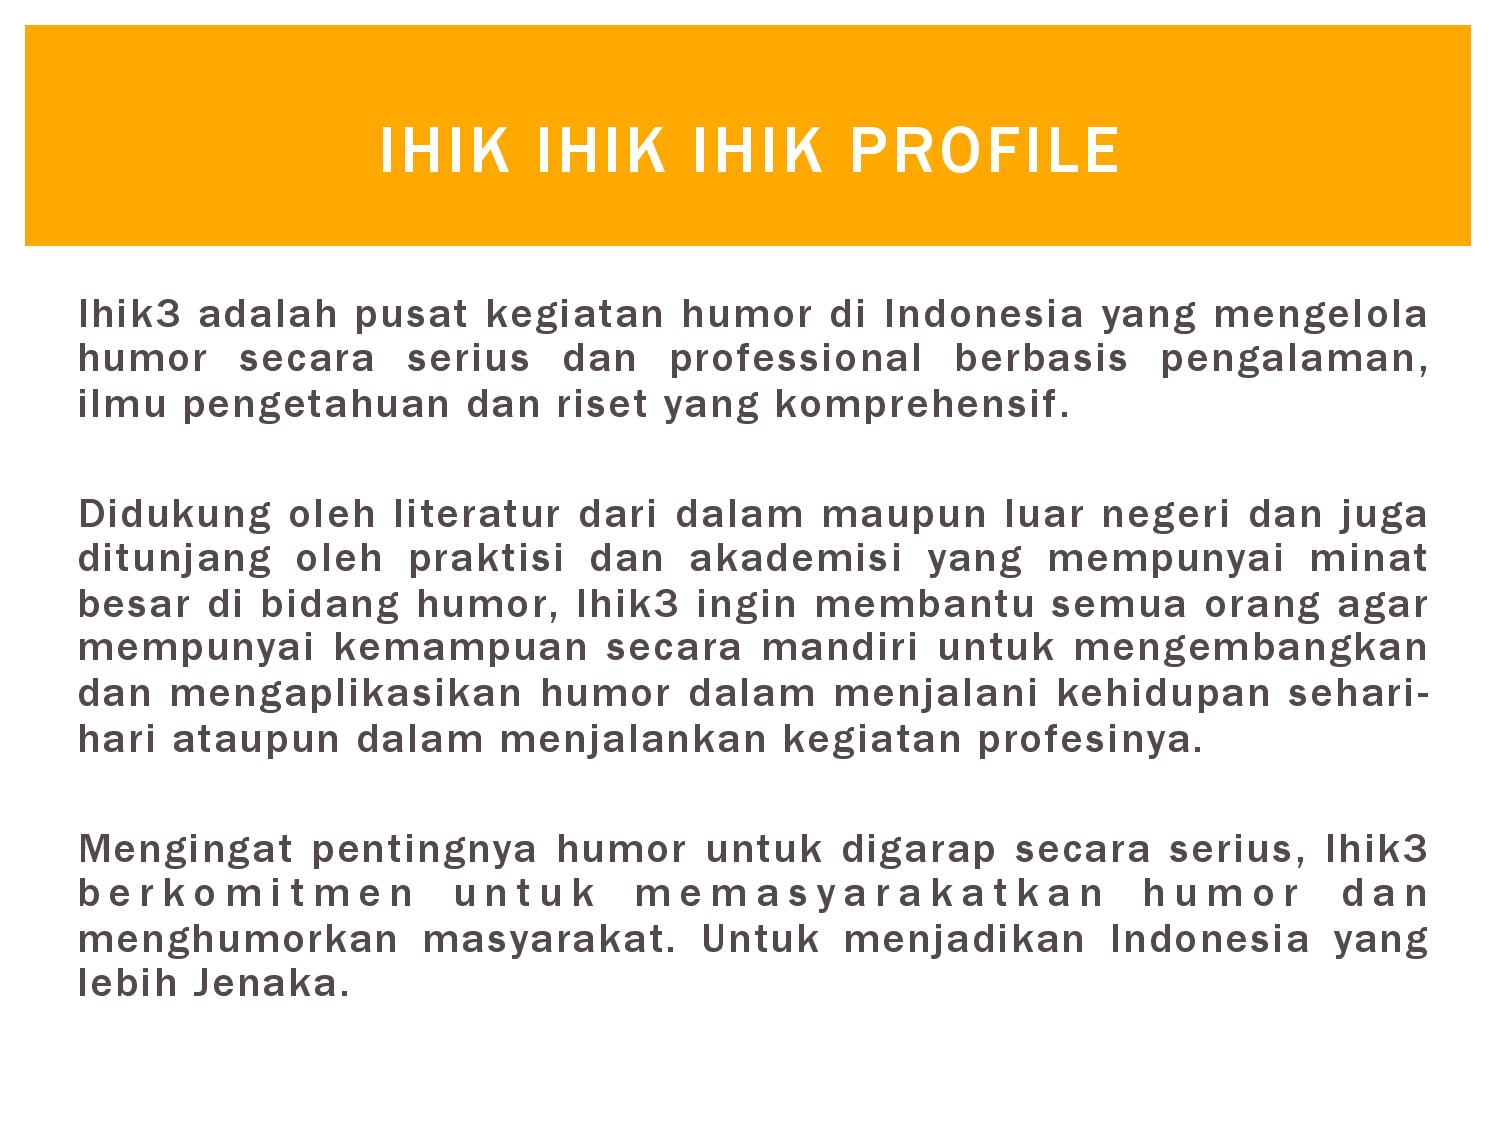 IHIK IHIK IHIK Profile_Final_270517-page-002